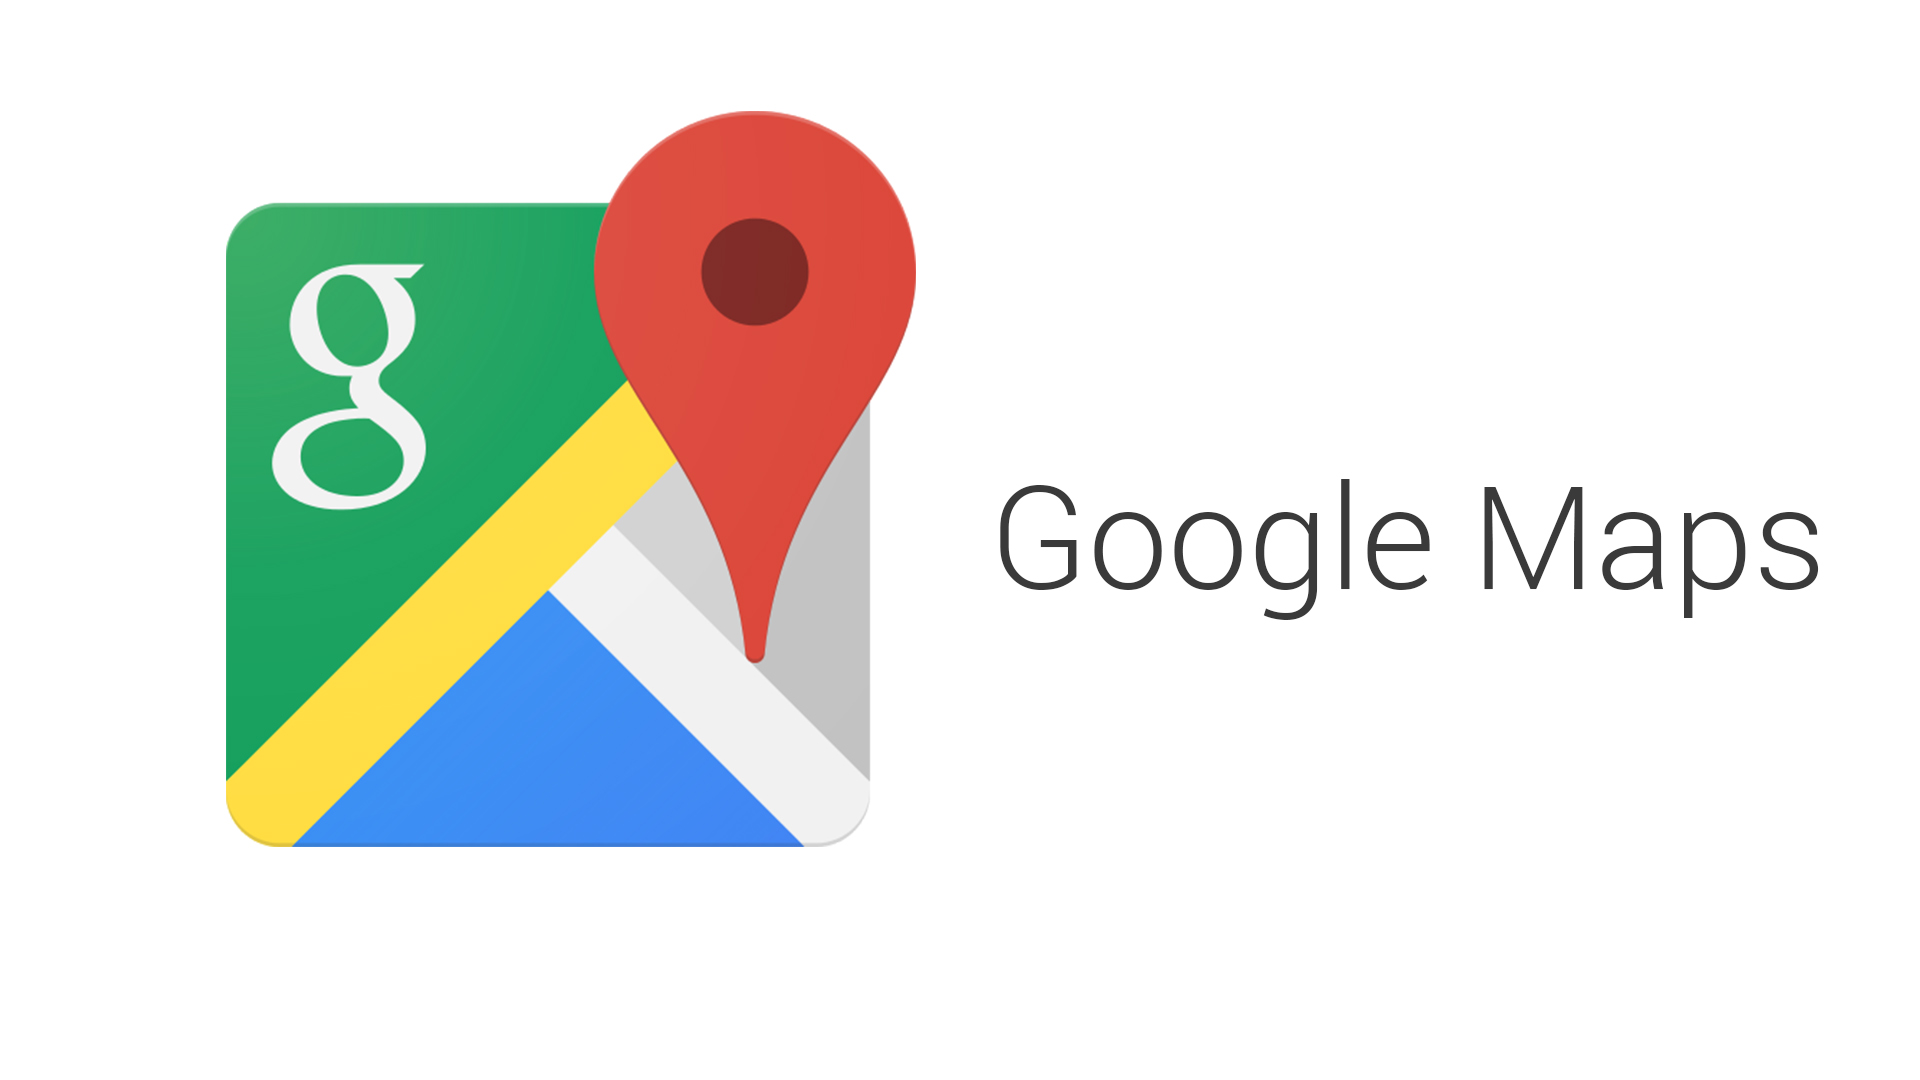 Google Maps will Show Disputed Borders Based on Geographical Location